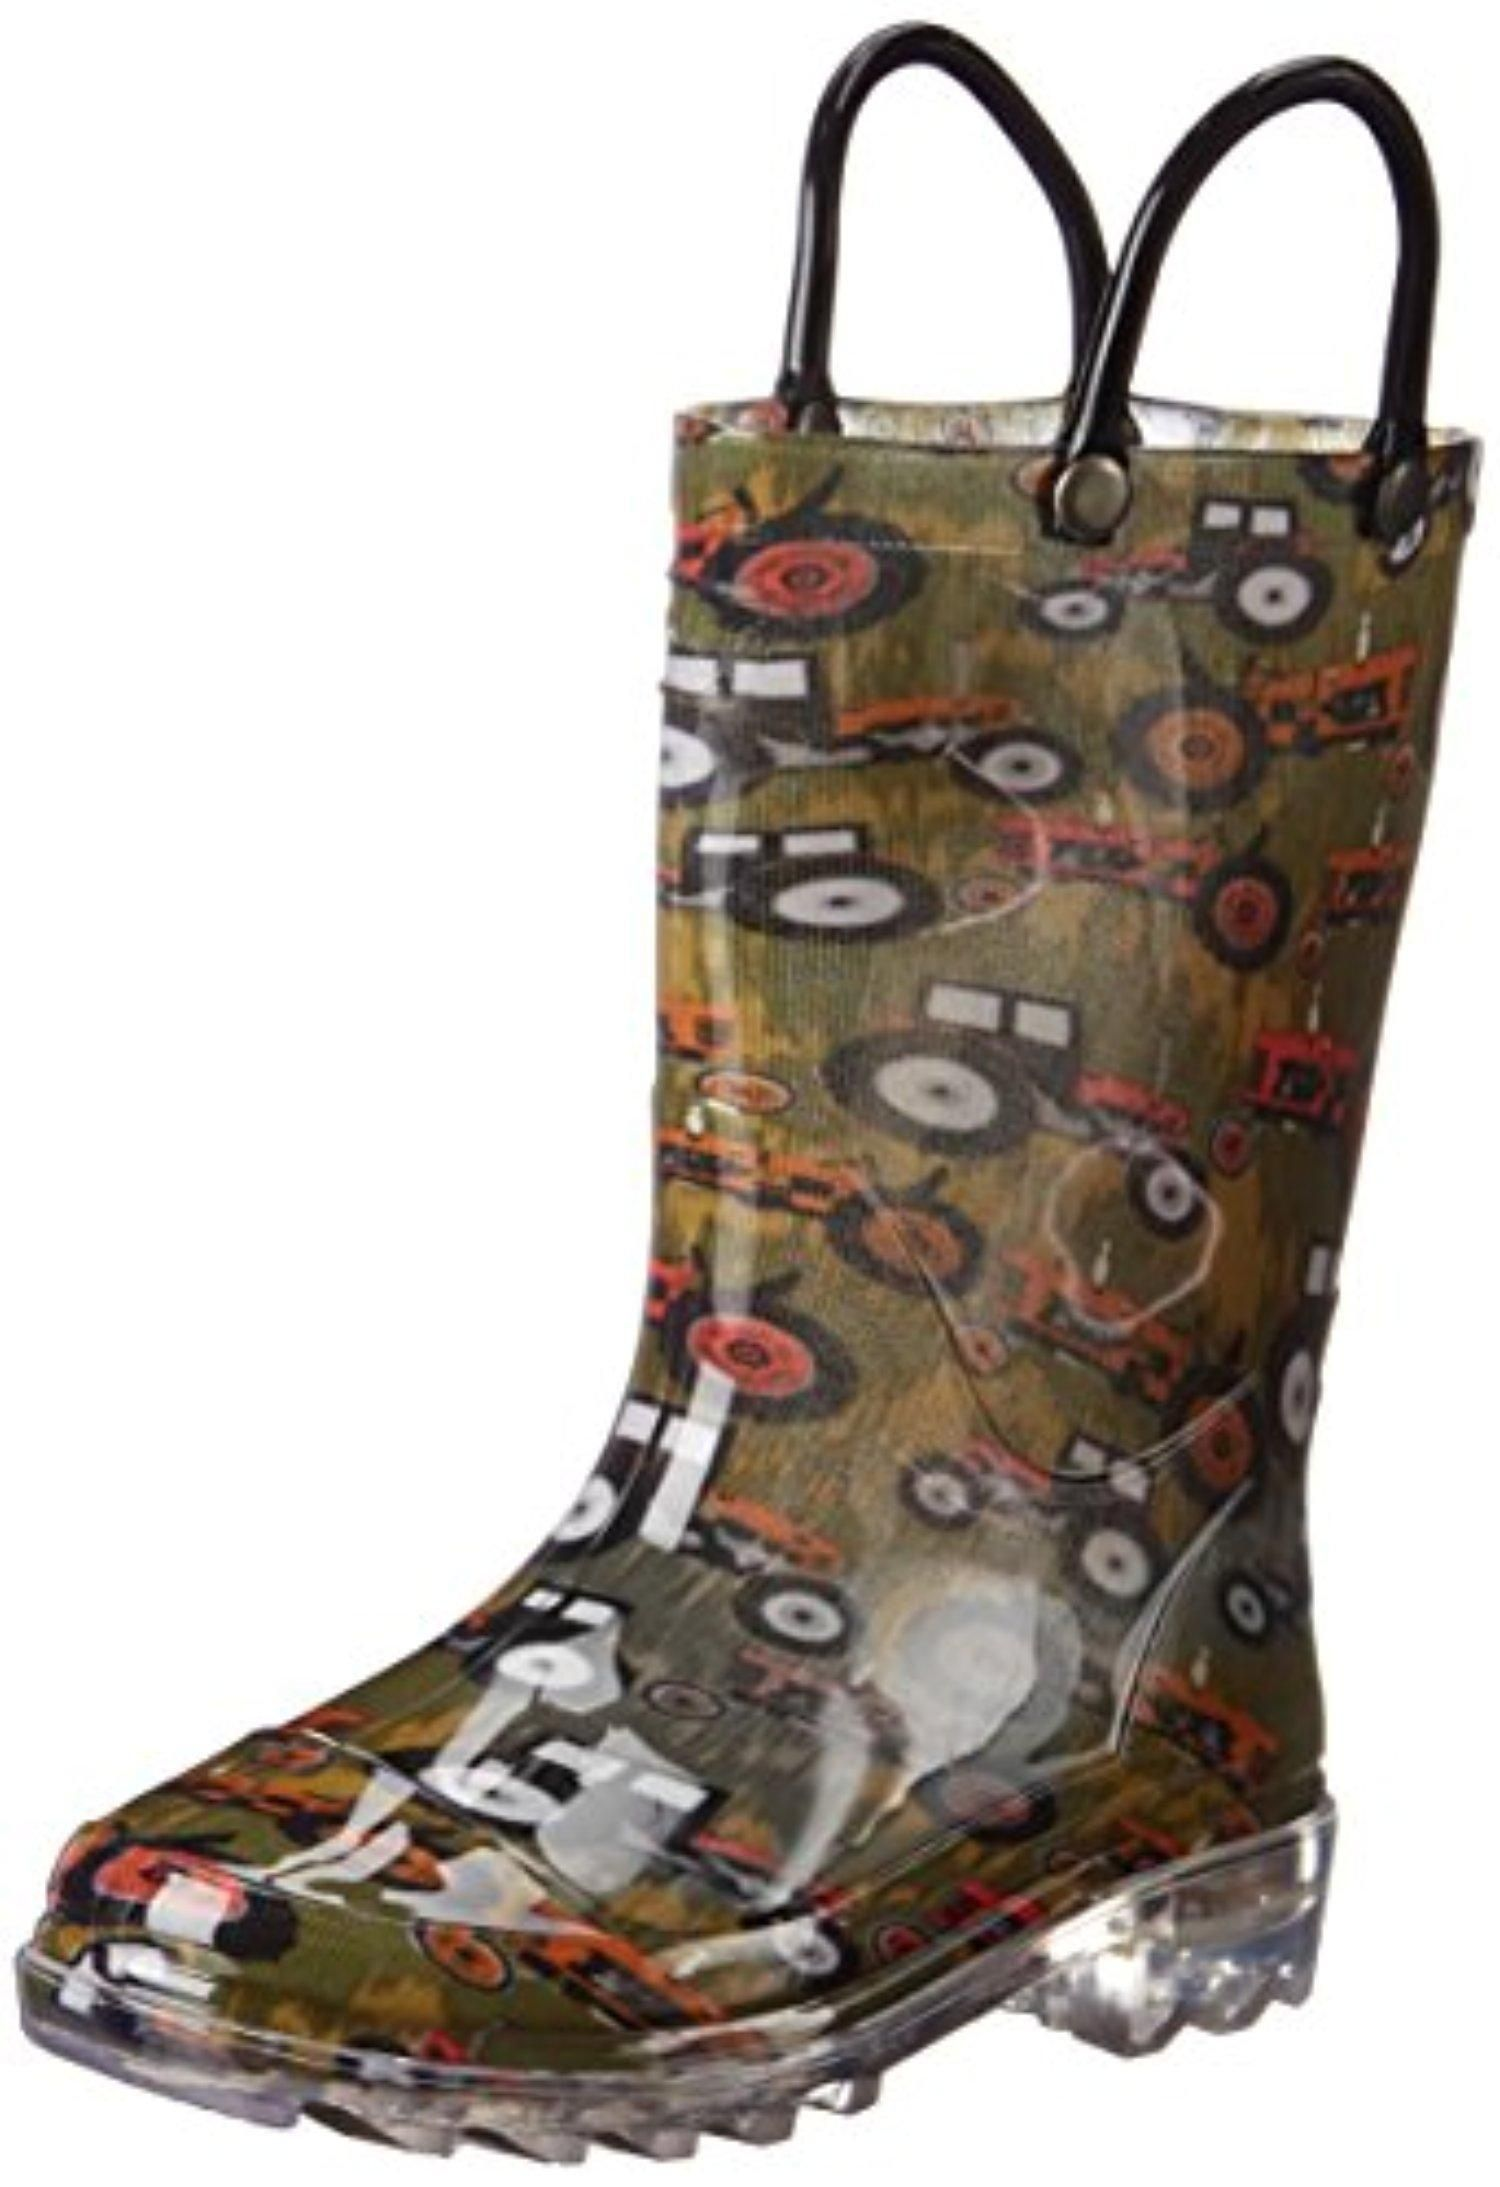 Western Chief Tractorized Light-Up Rain Boot (Toddler/Little Kid/Big Kid), Olive Green, 8 Toddler - Brought to you by Avarsha.com